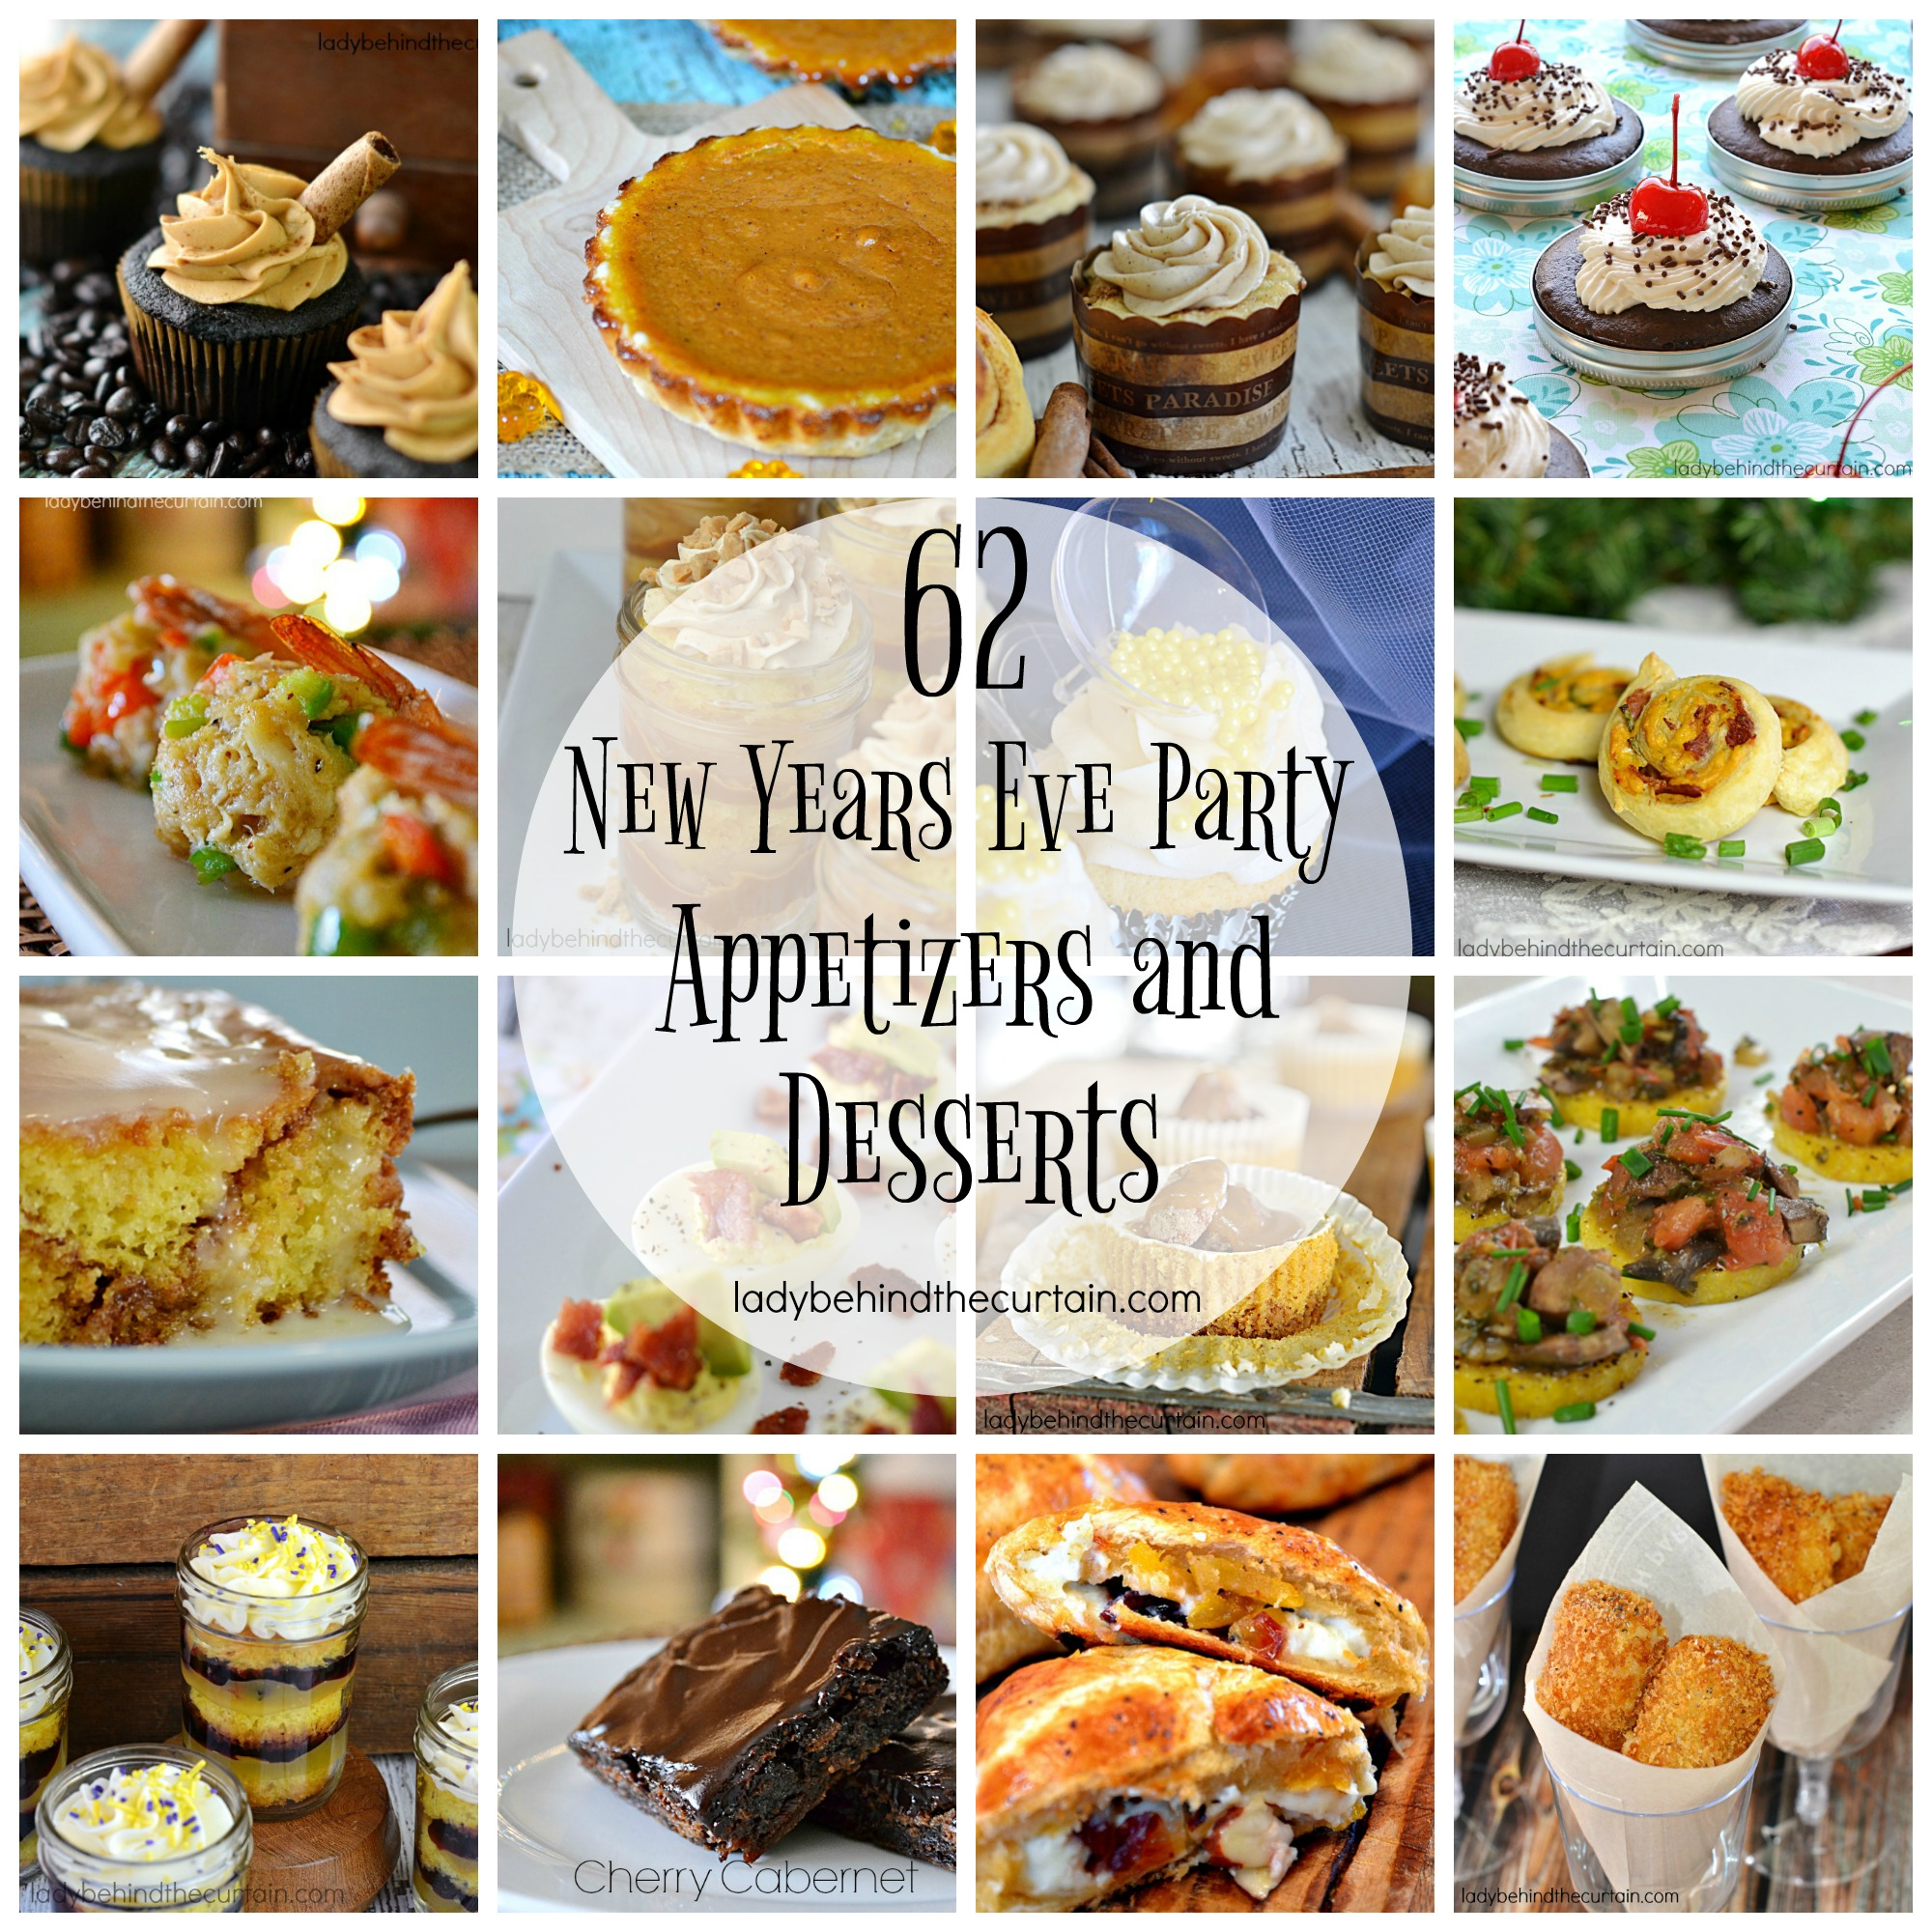 62 new year 39 s eve party appetizers and desserts for Appetizer ideas for new years eve party